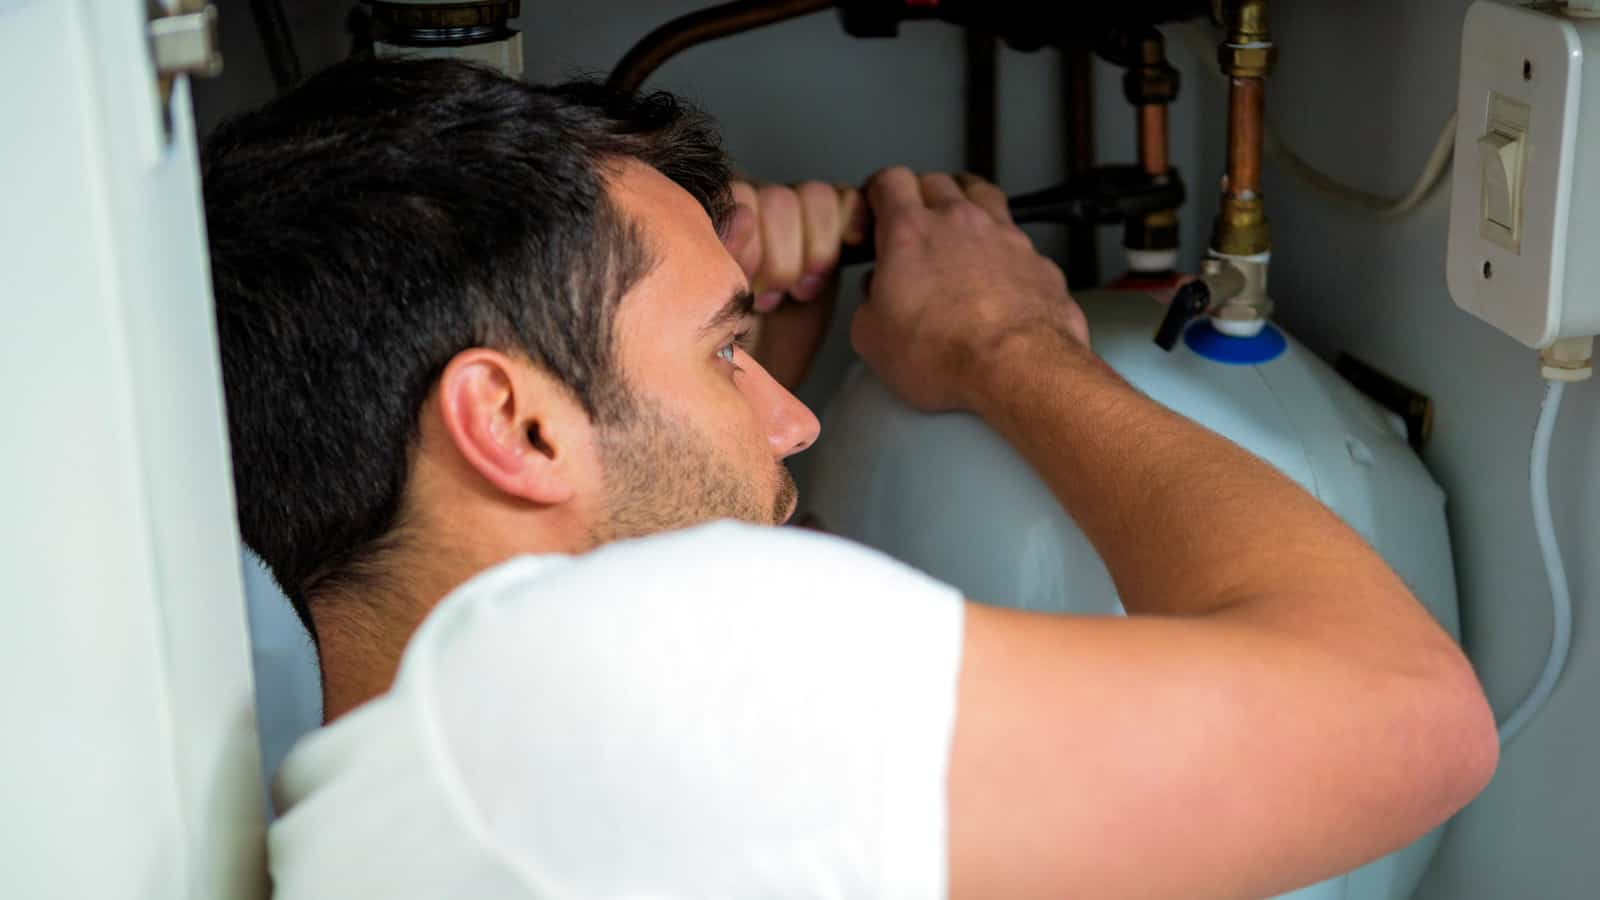 John M Szollose Plumbing & Heating of Philadelphia